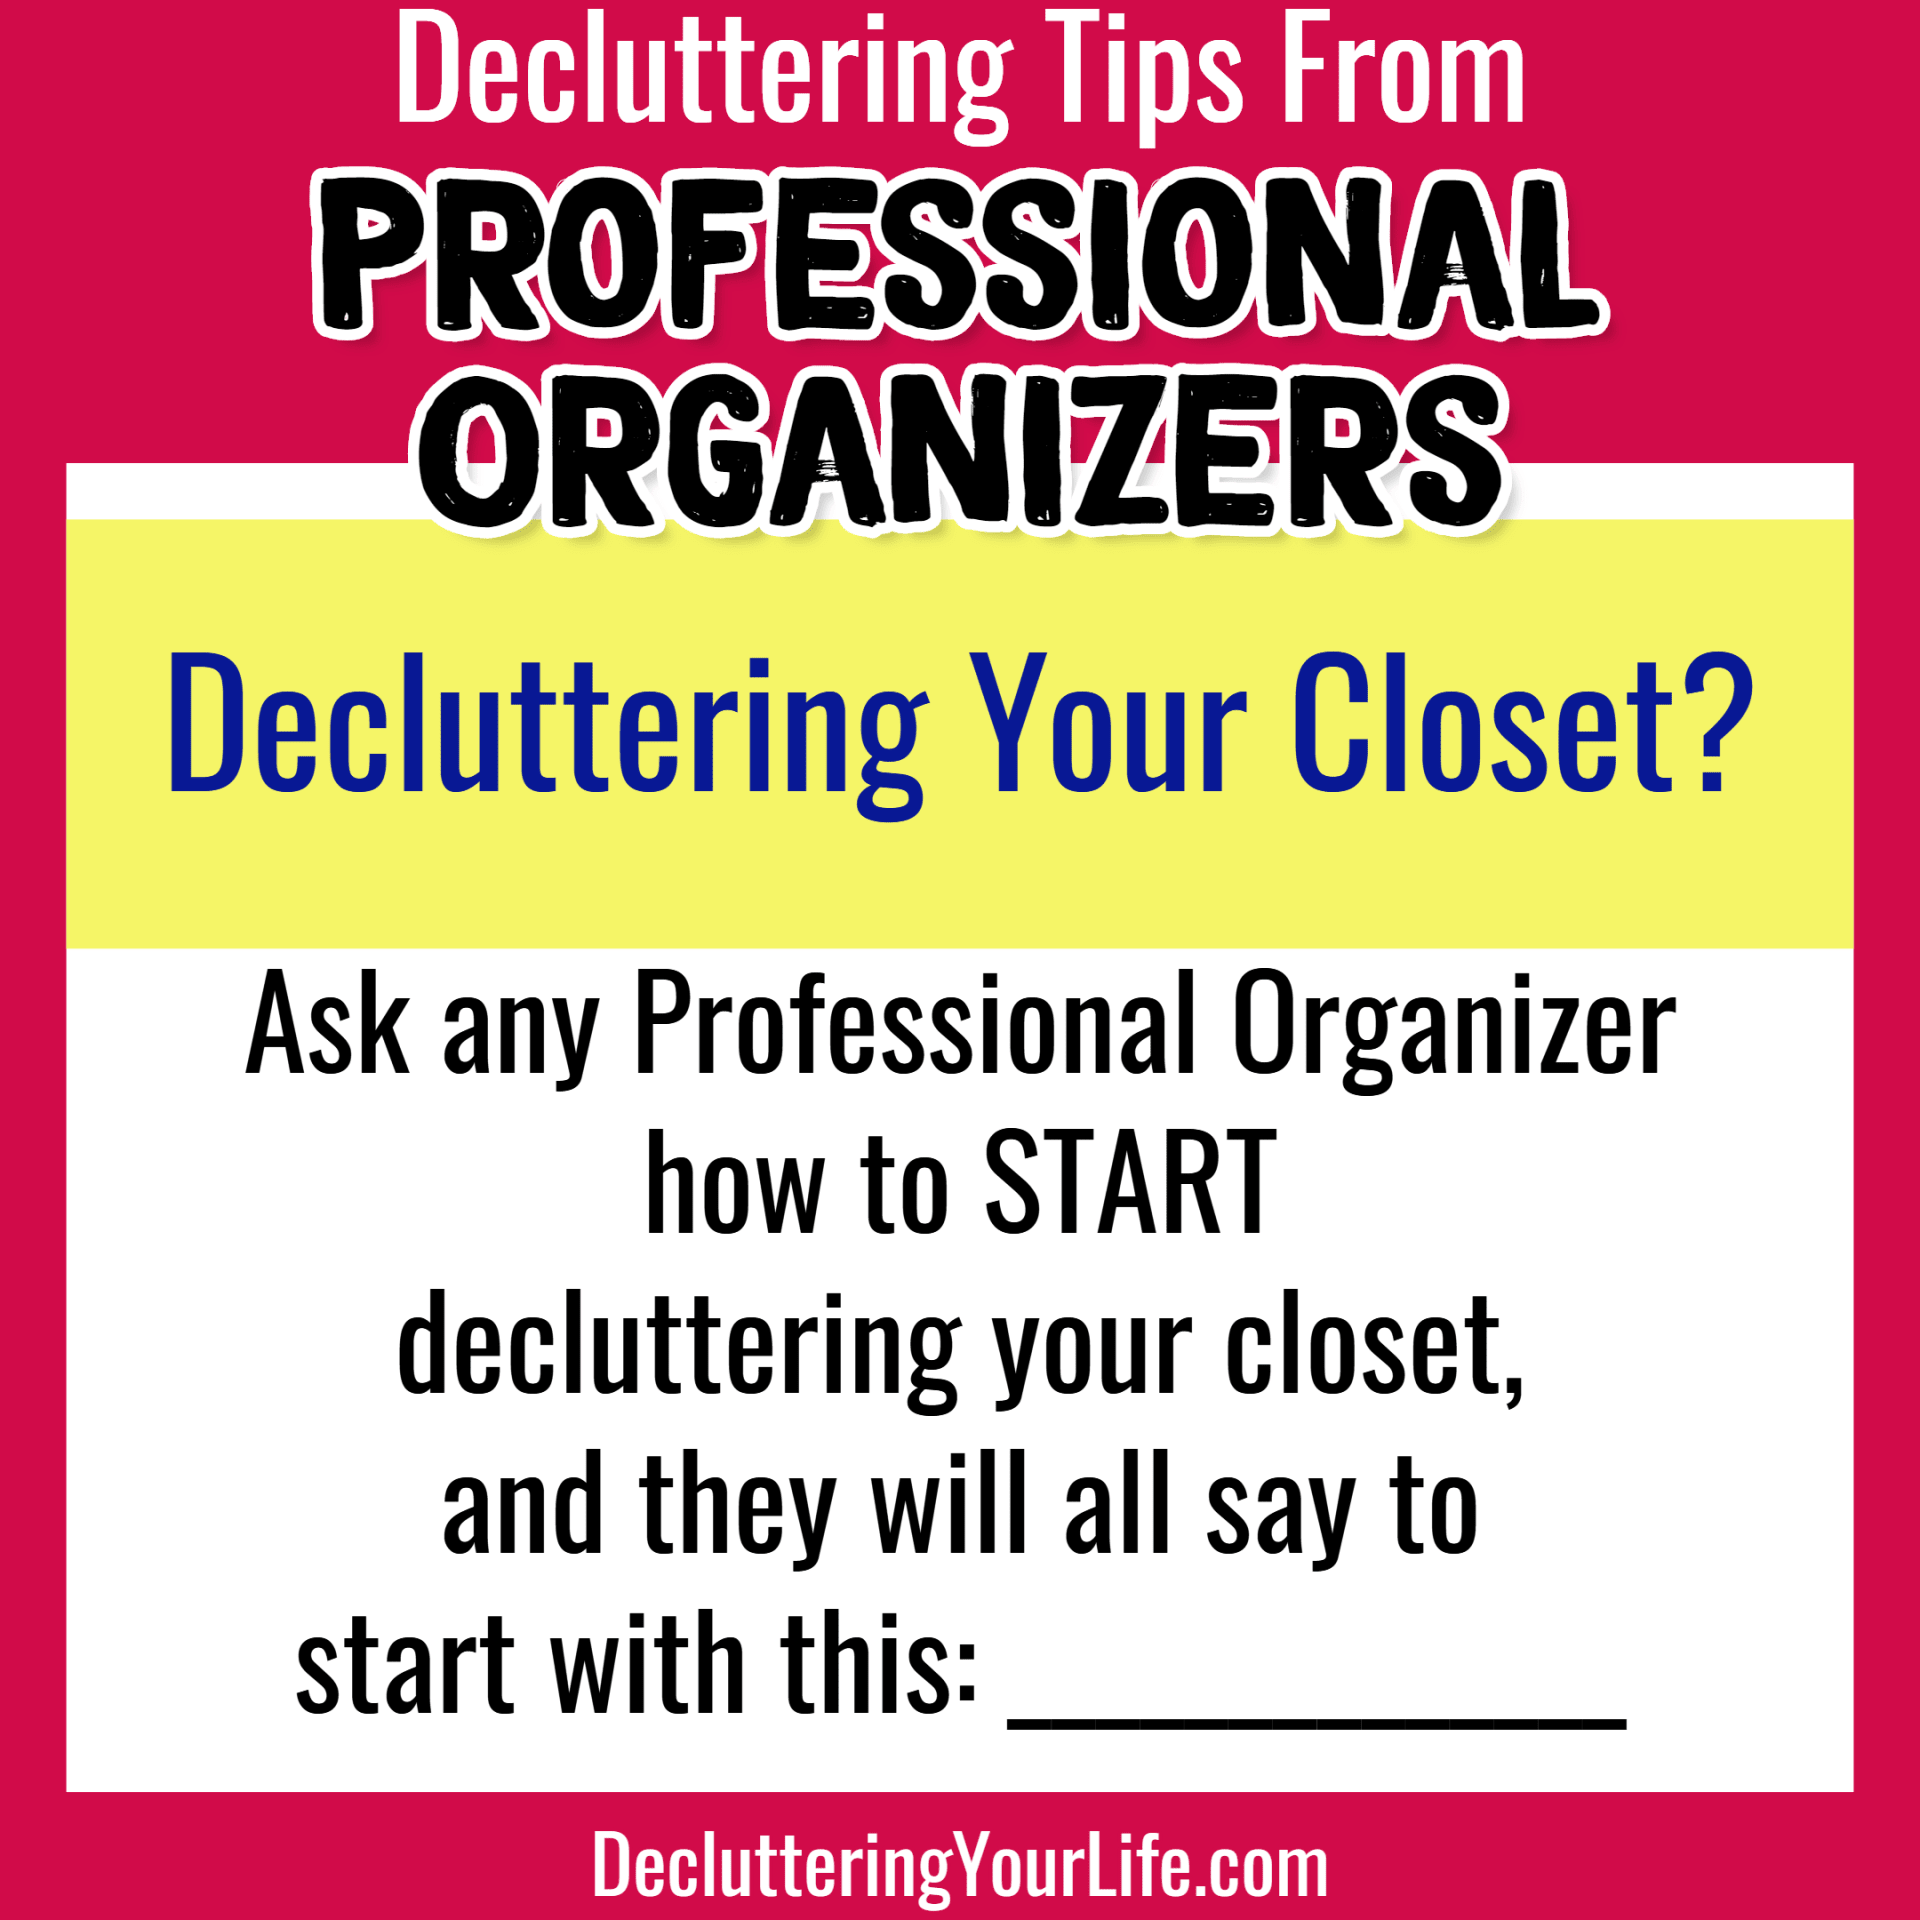 Tips from Professional organizers to stop feeling overwhelmed by messy house and clutter - learn how to declutter and organize your home FAST like Professional organizers do